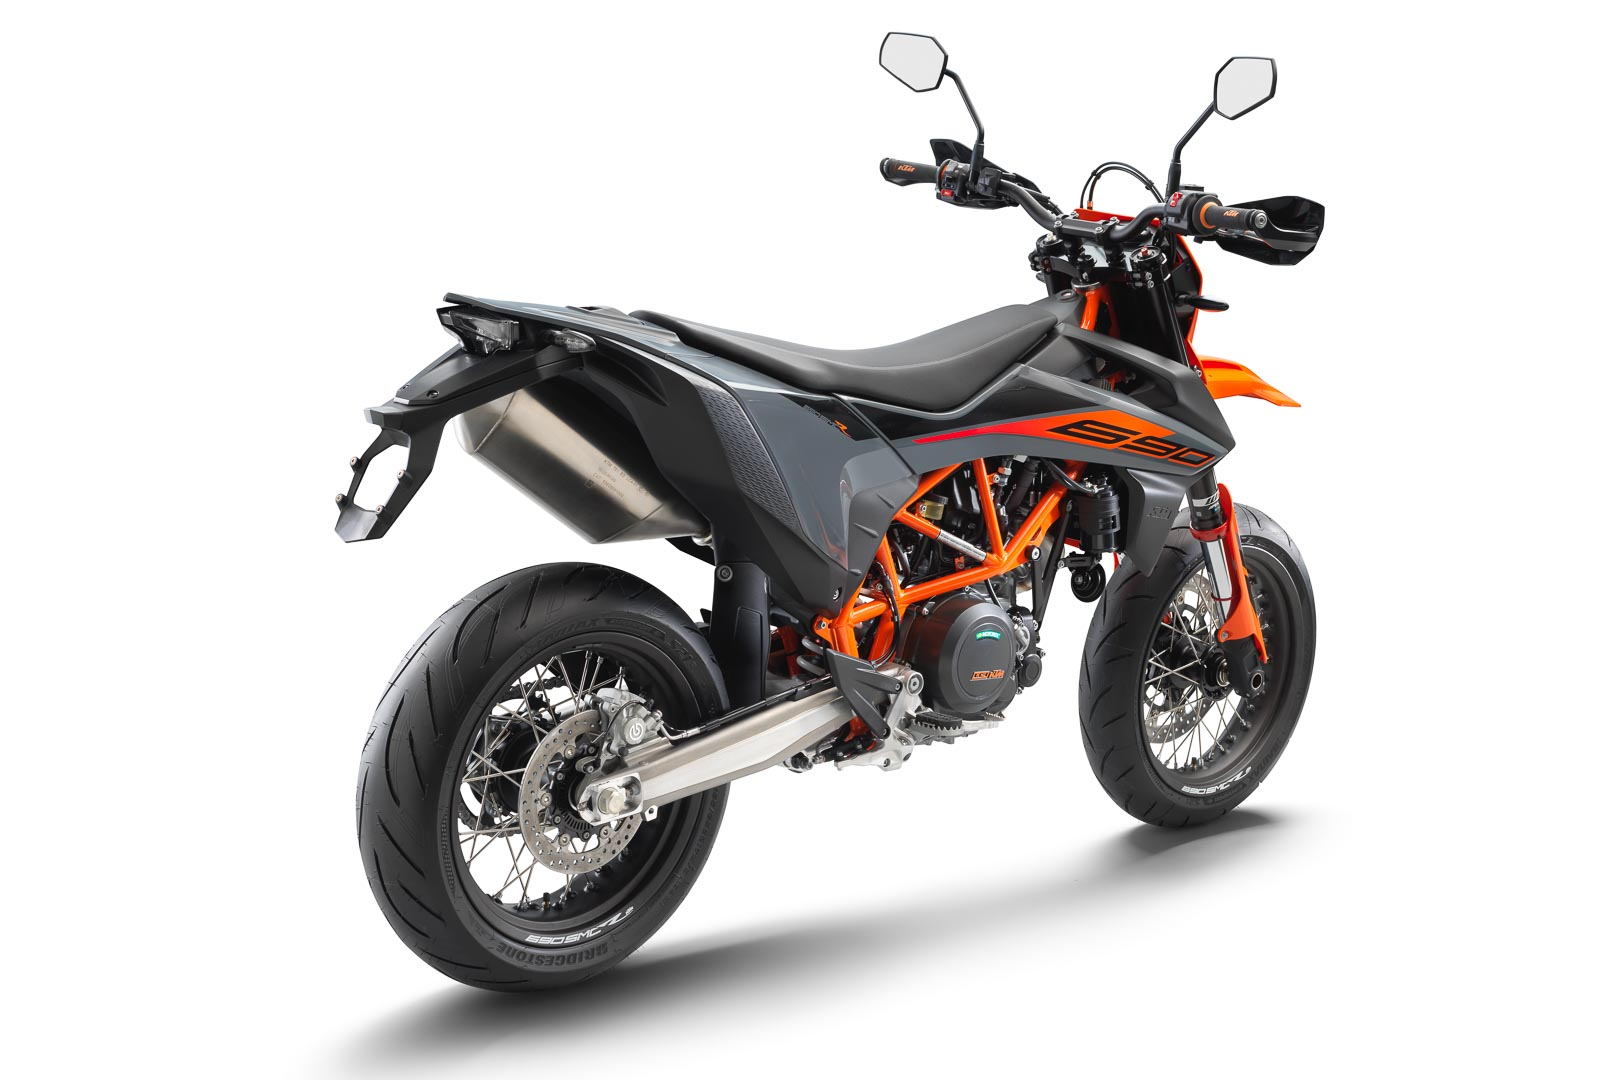 2021 KTM 690 SMC R: For Sale Price